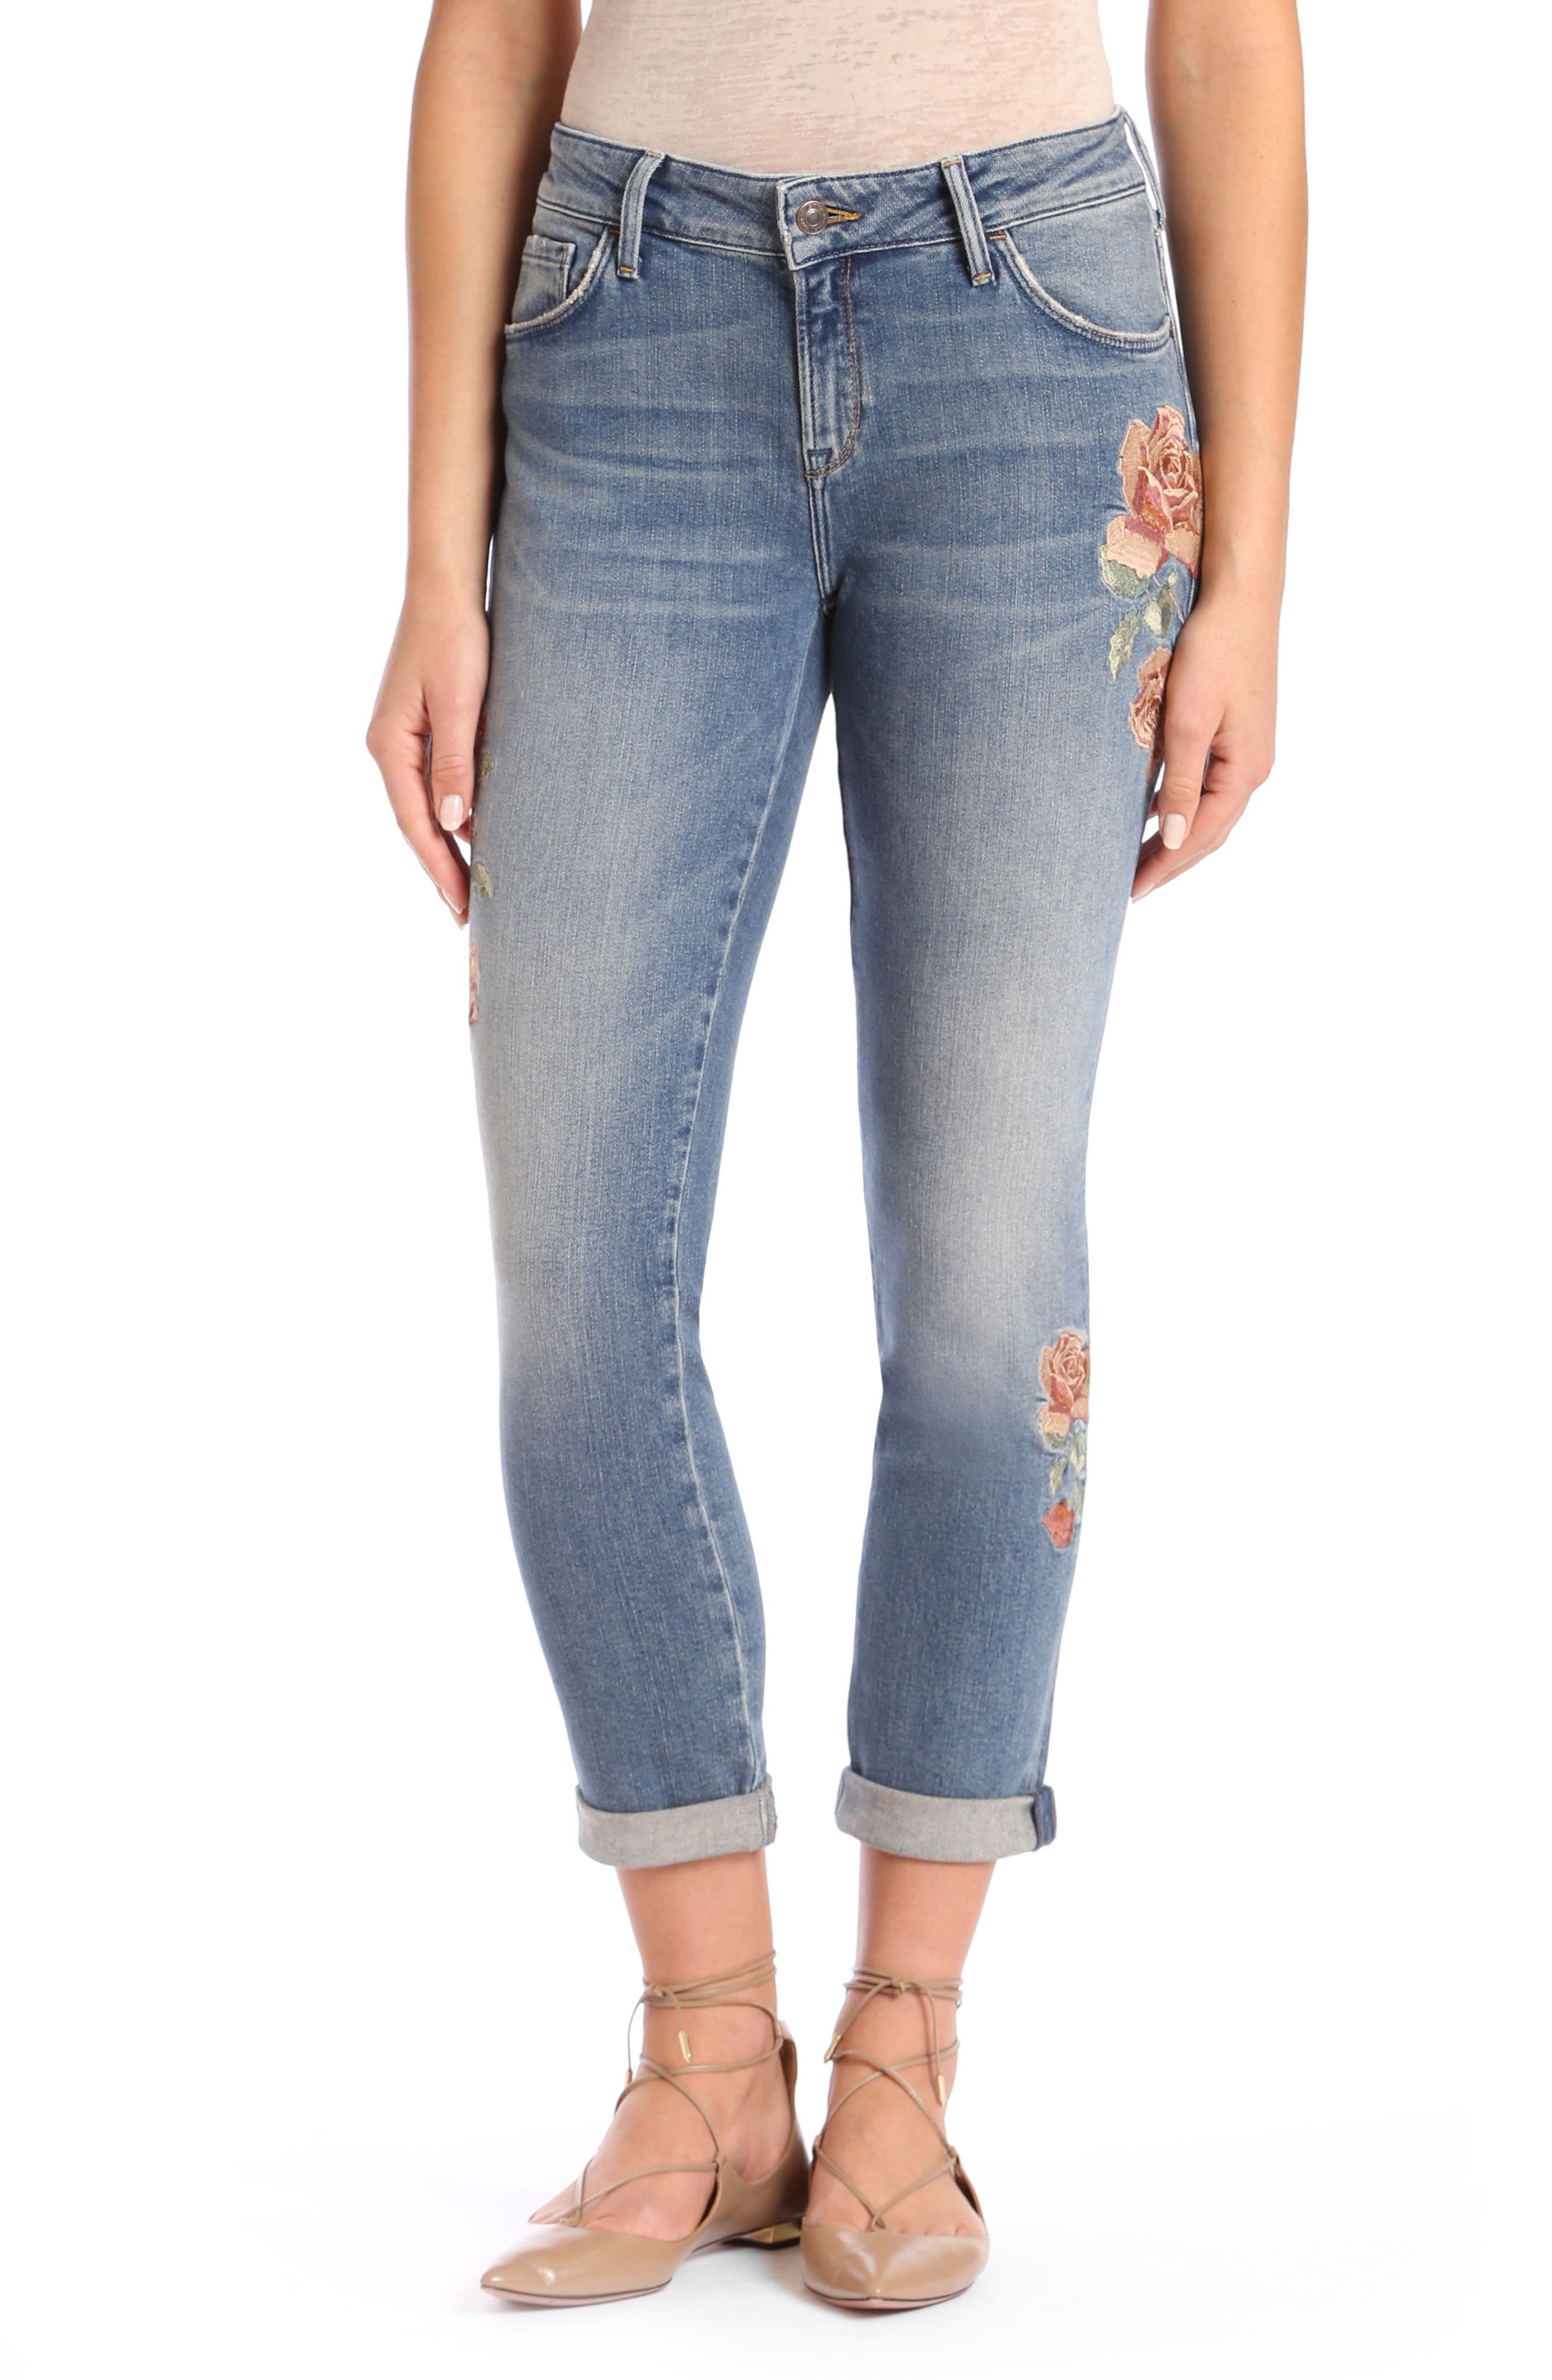 Ada Embroidered Boyfriend Jeans,                             Main thumbnail 1, color,                             Mid Rose Embroidery